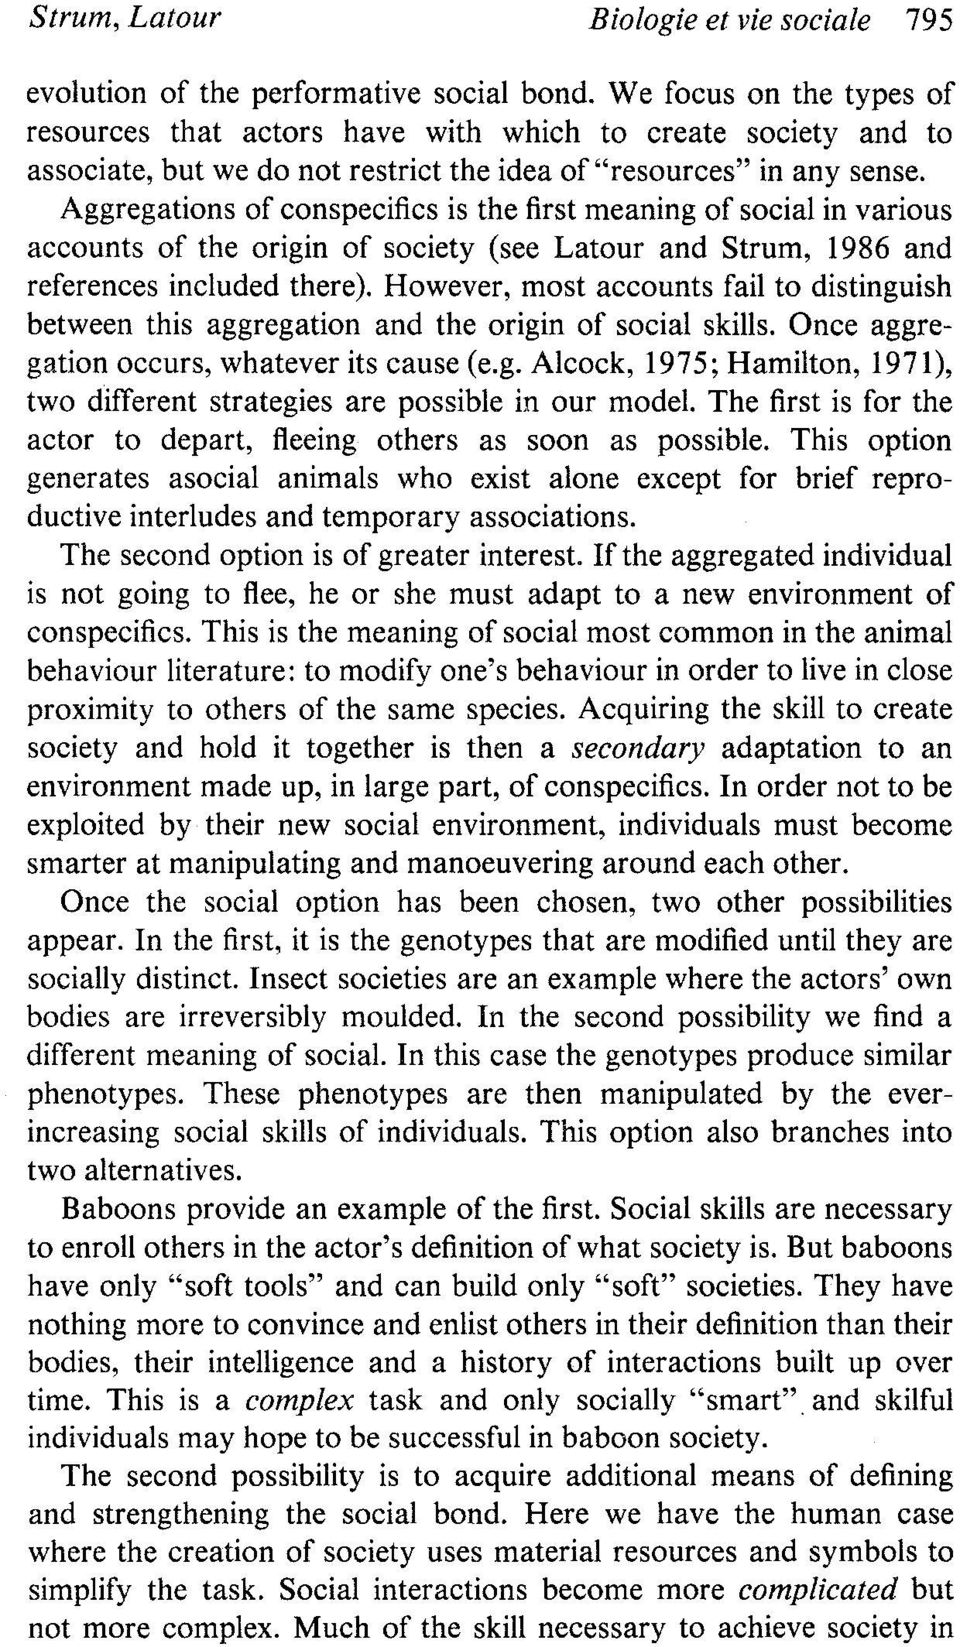 Aggregations of conspecifics is the first meaning of social in various accounts of the origin of society (see Latour and Strum, 1986 and references included there).